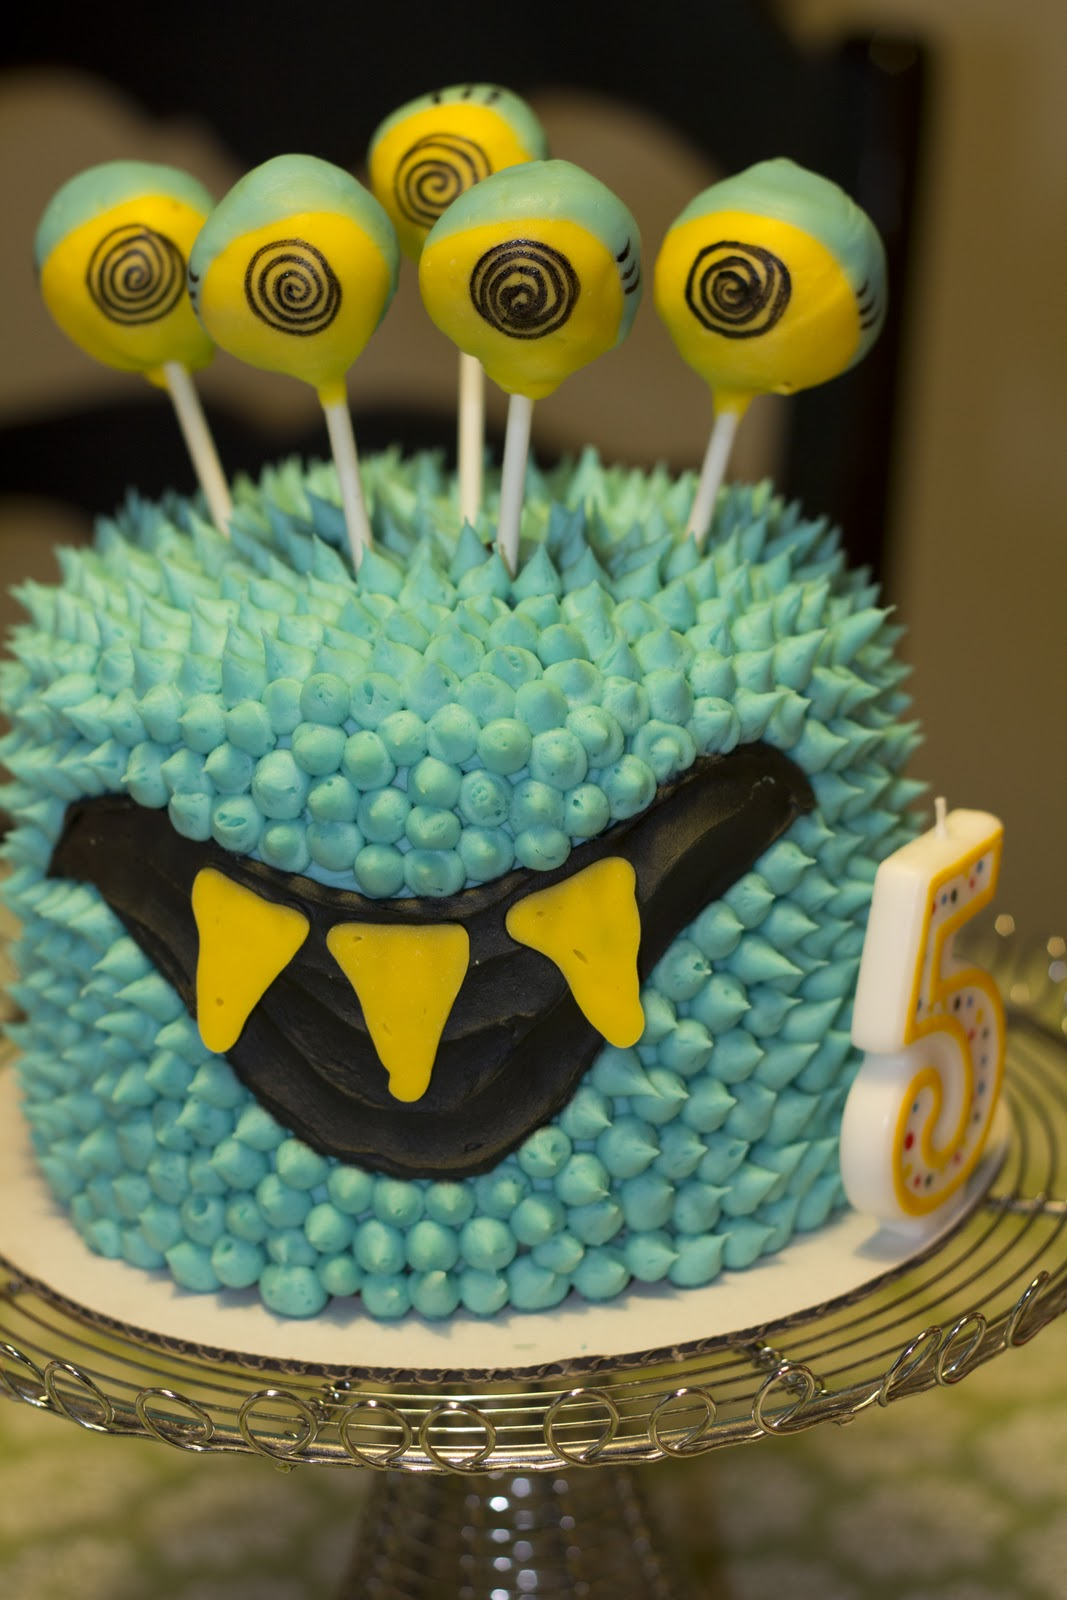 Birthday Cake11 - Monster Cake.jpg